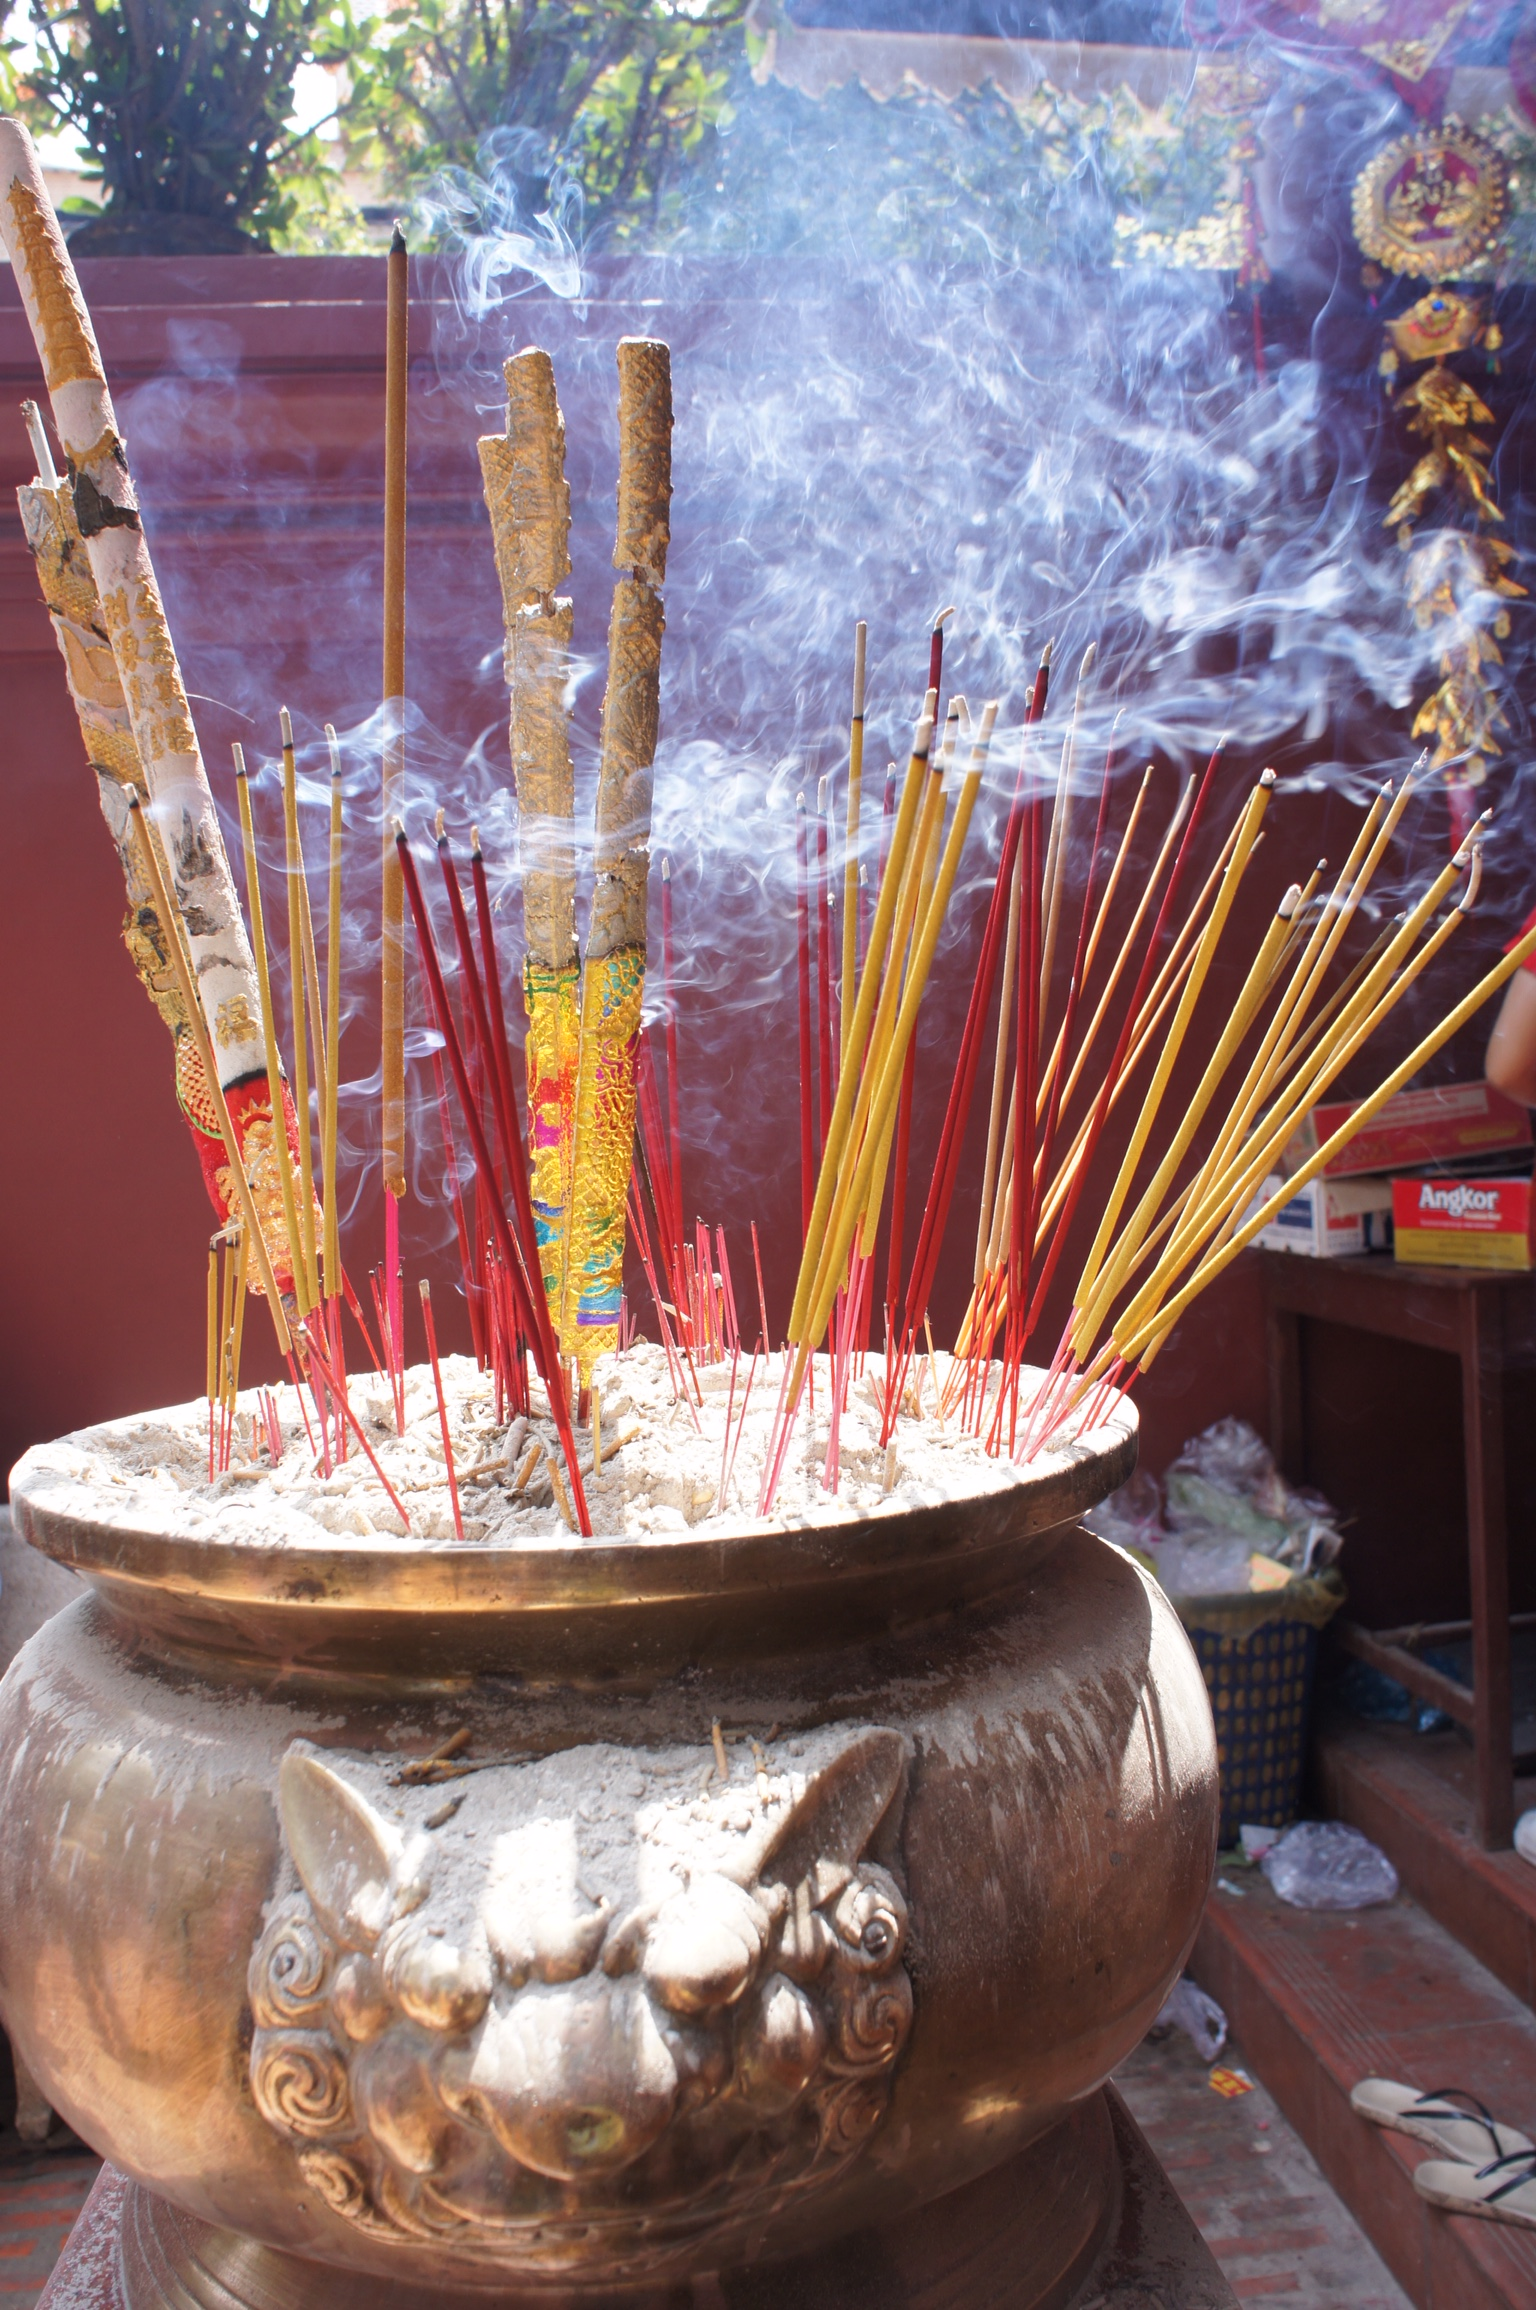 Incense burning for the Lunar New Year